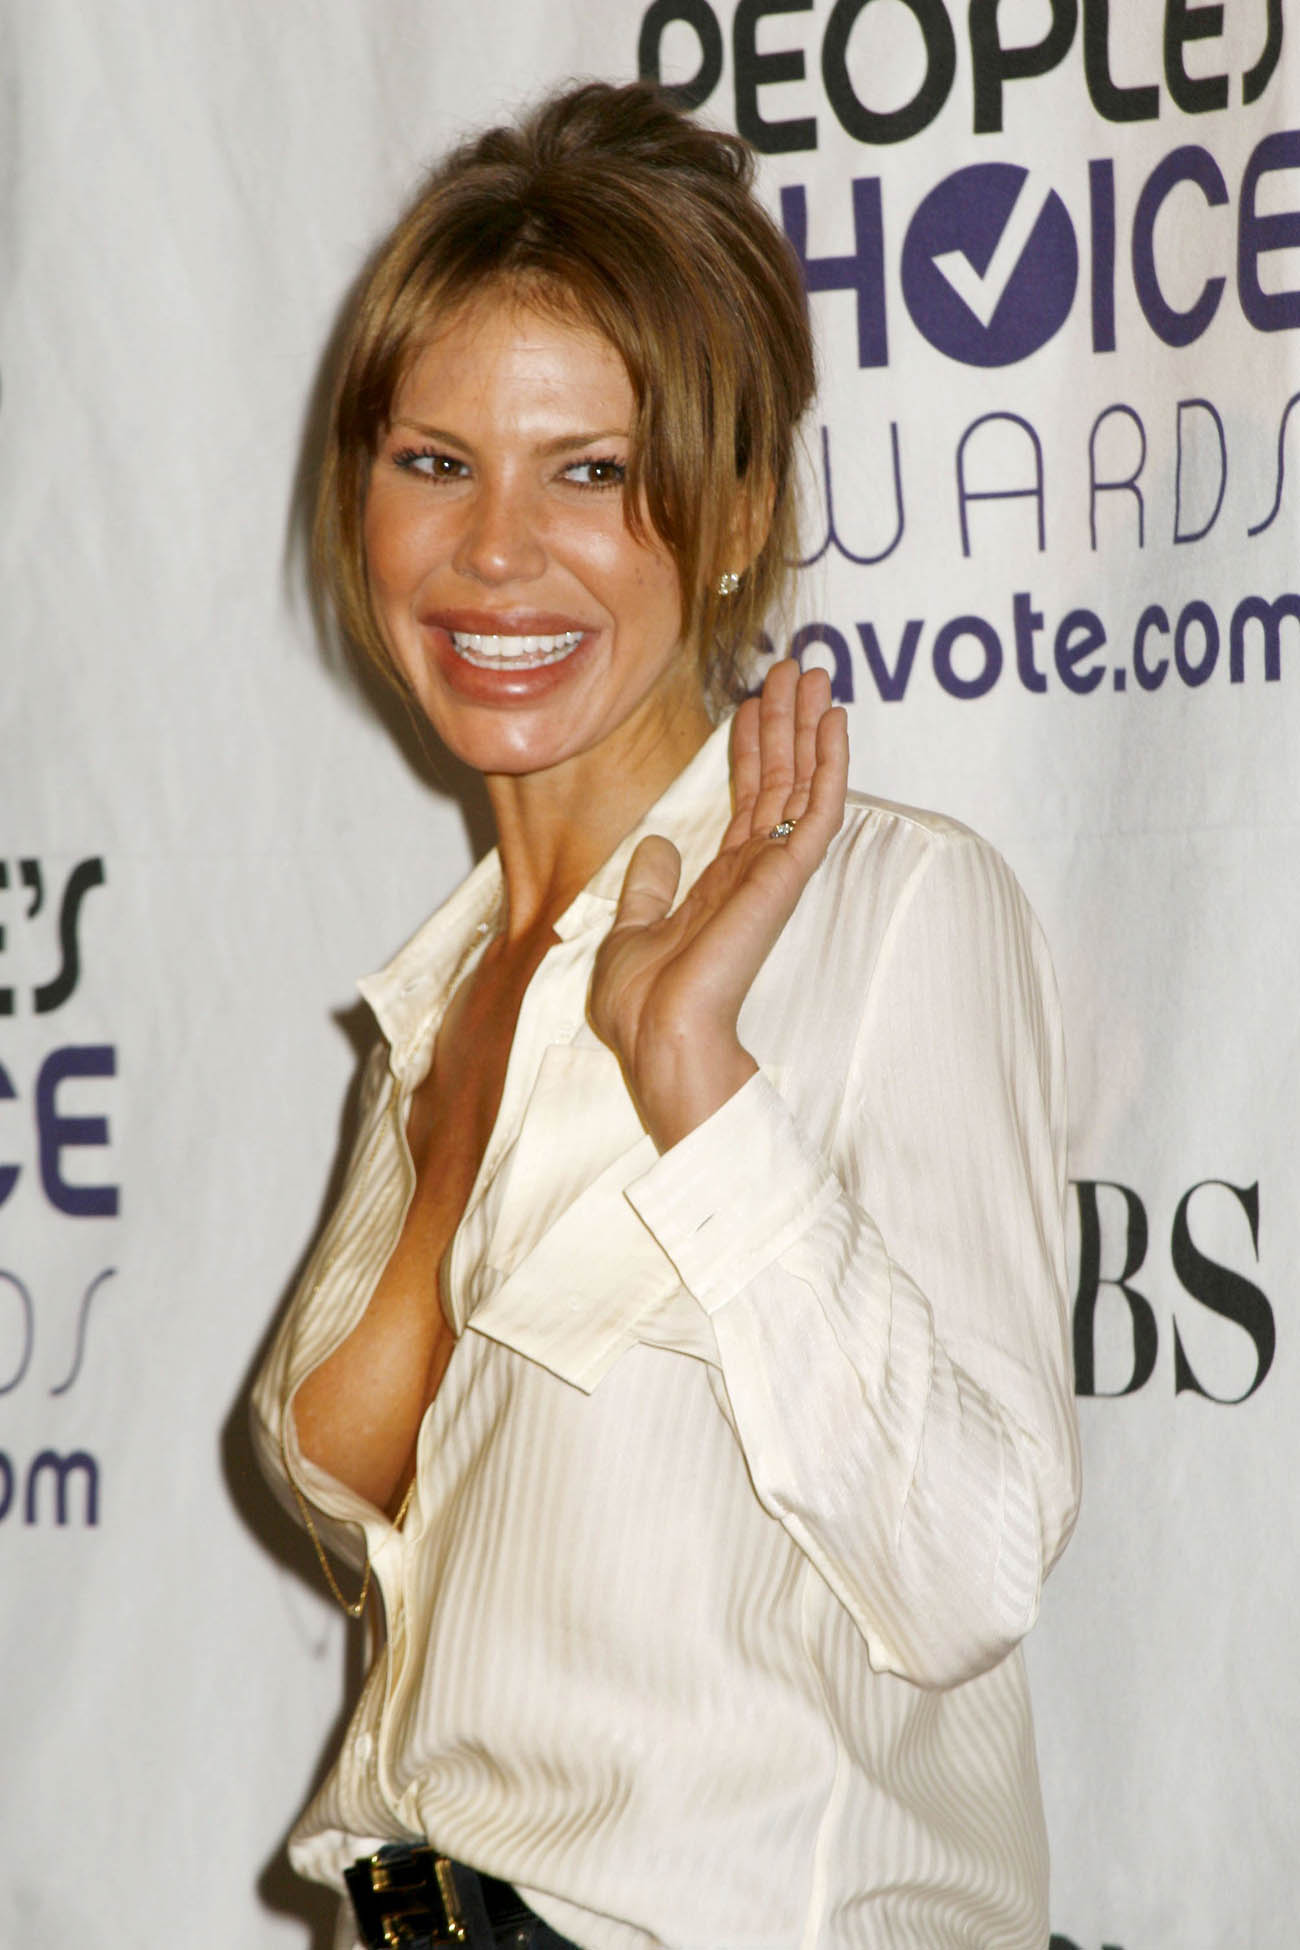 Selfie Nikki Cox naked (98 photos), Ass, Paparazzi, Boobs, bra 2006